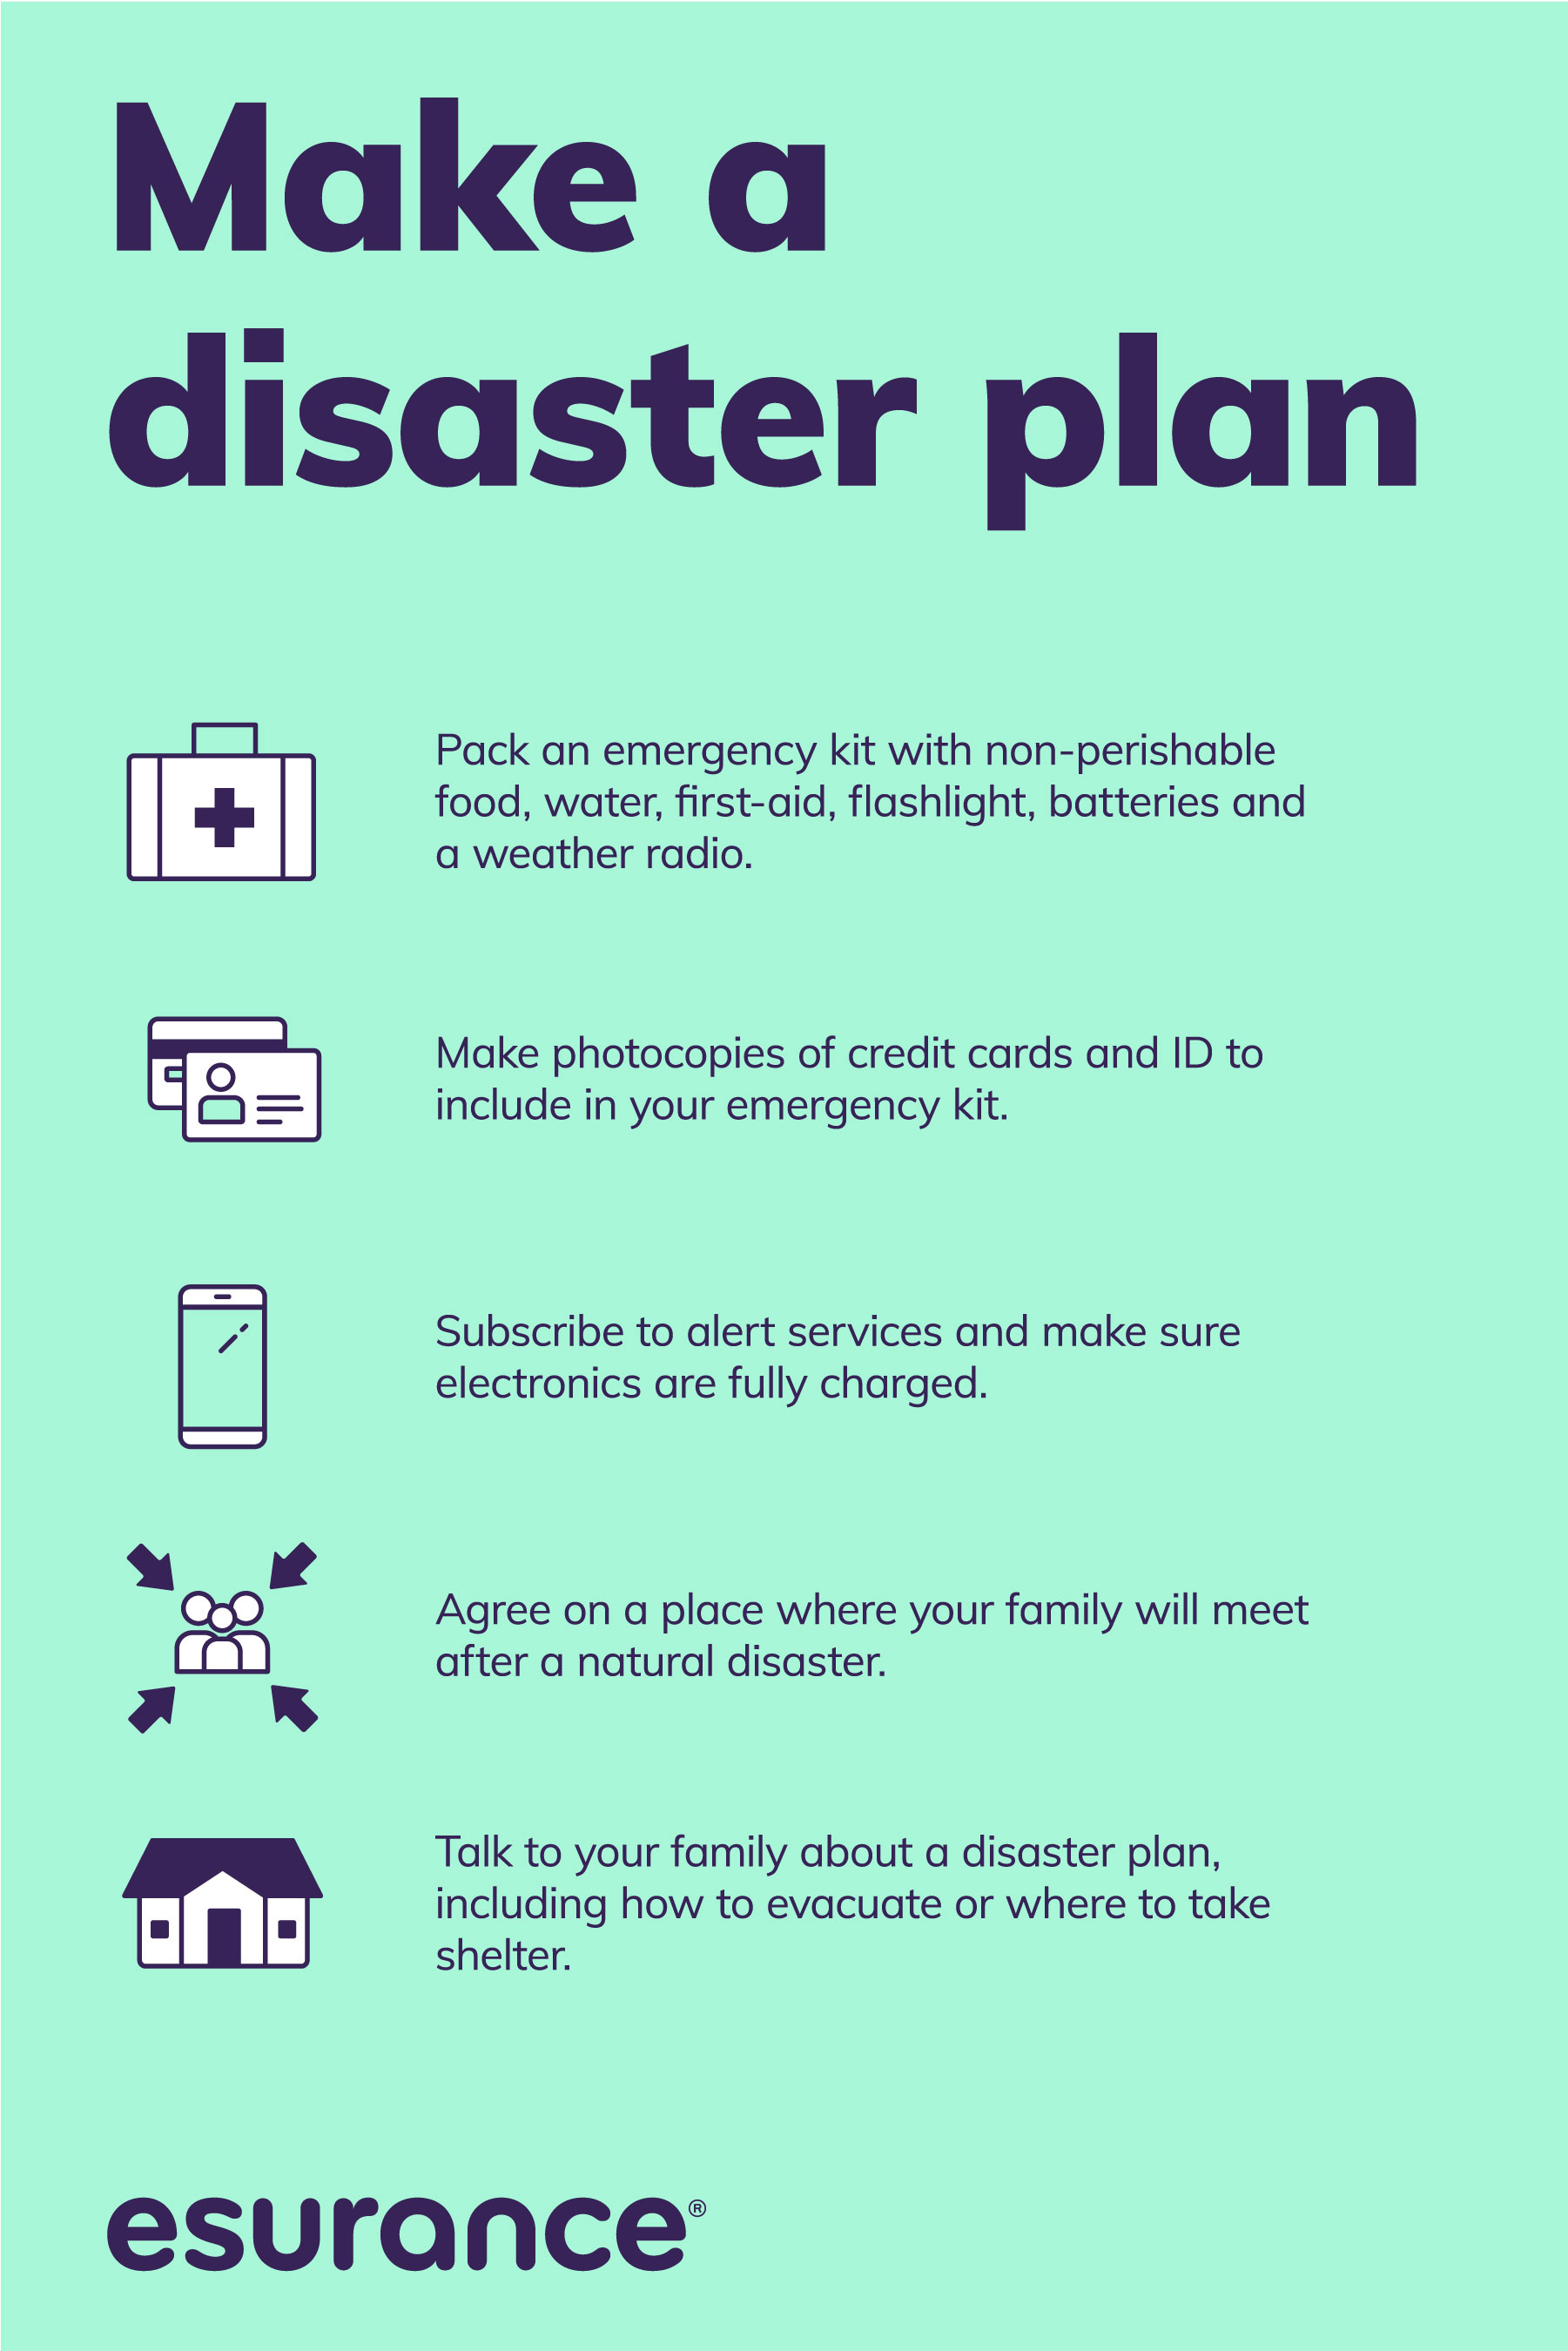 Making a family disaster plan is an important step to being prepared, and it can be surprisingly painless with this simple guide